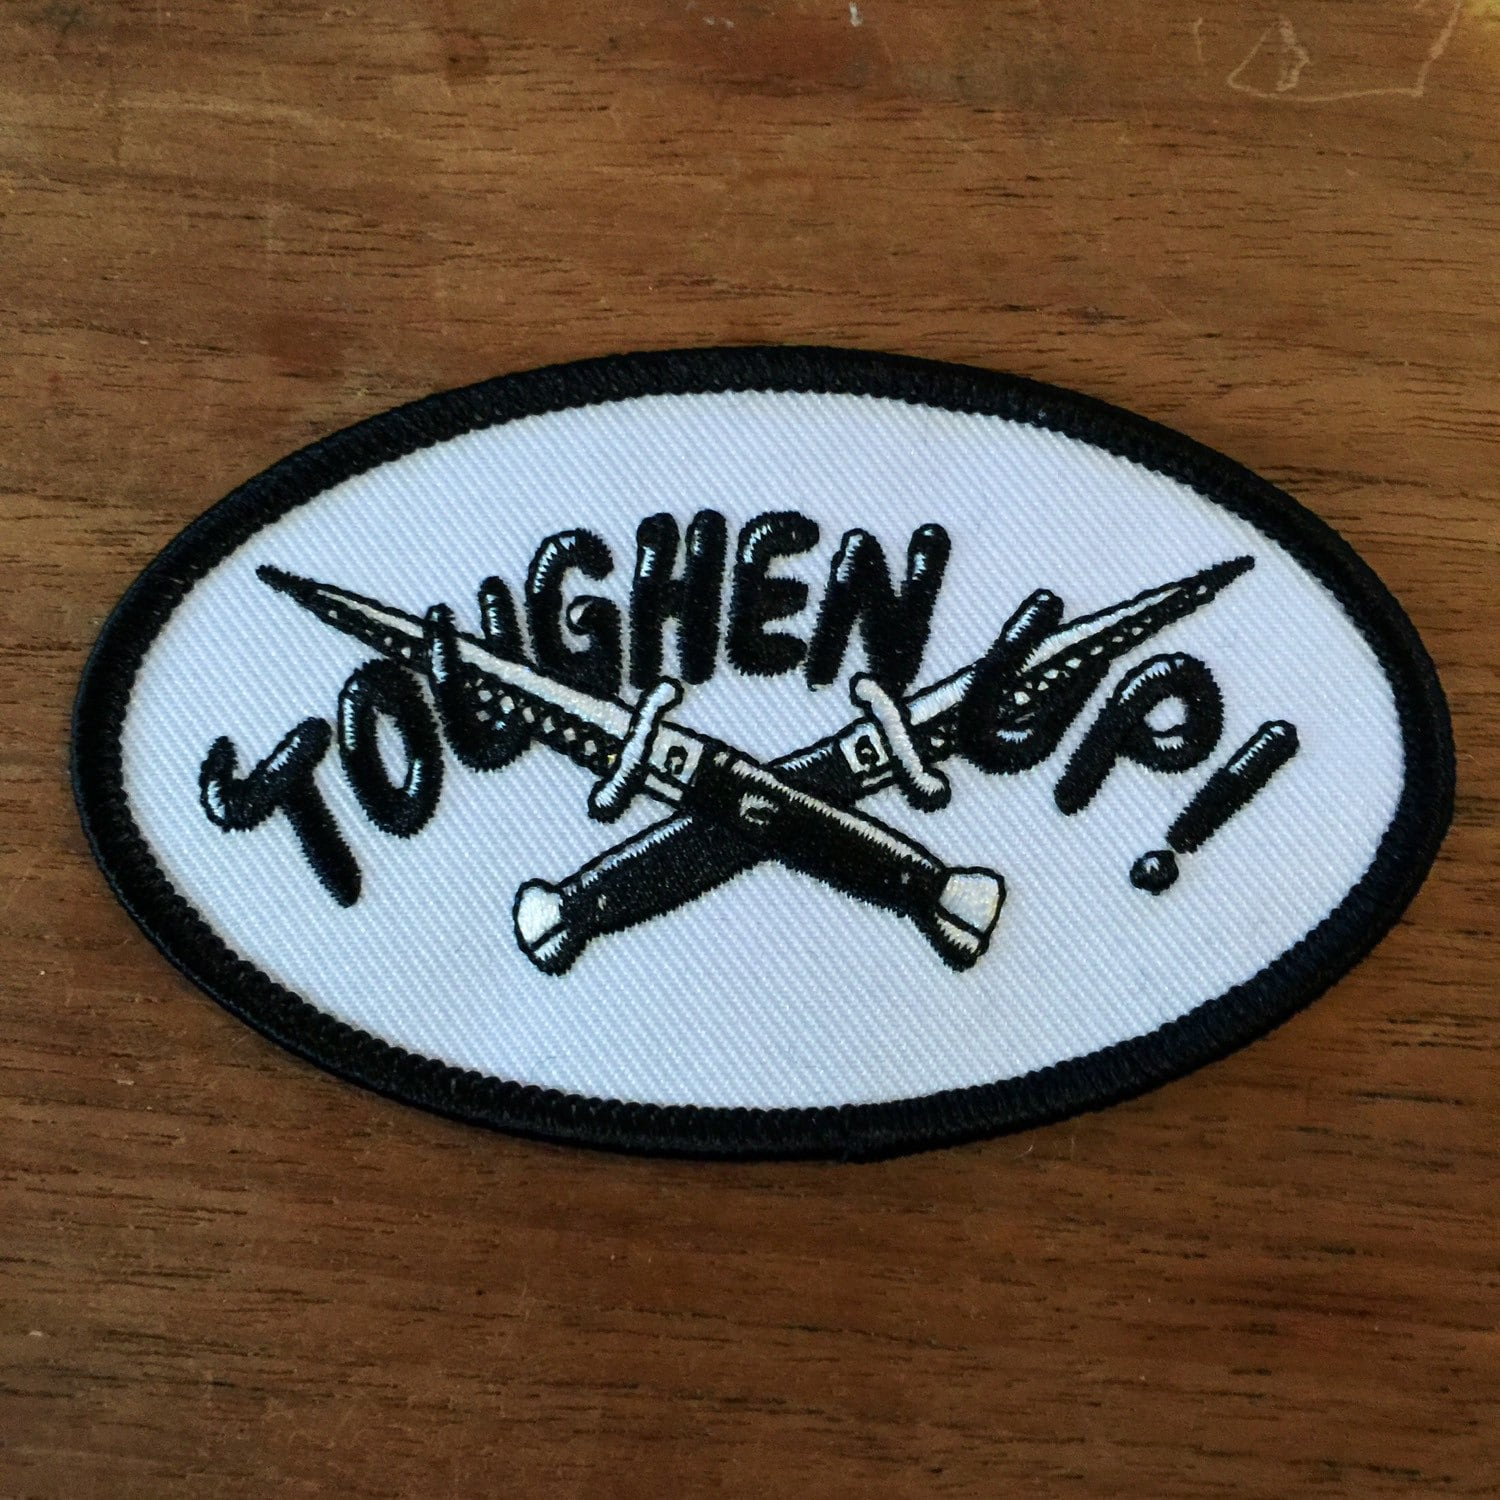 Toughen up embroidered patch by bruisedtongue on etsy